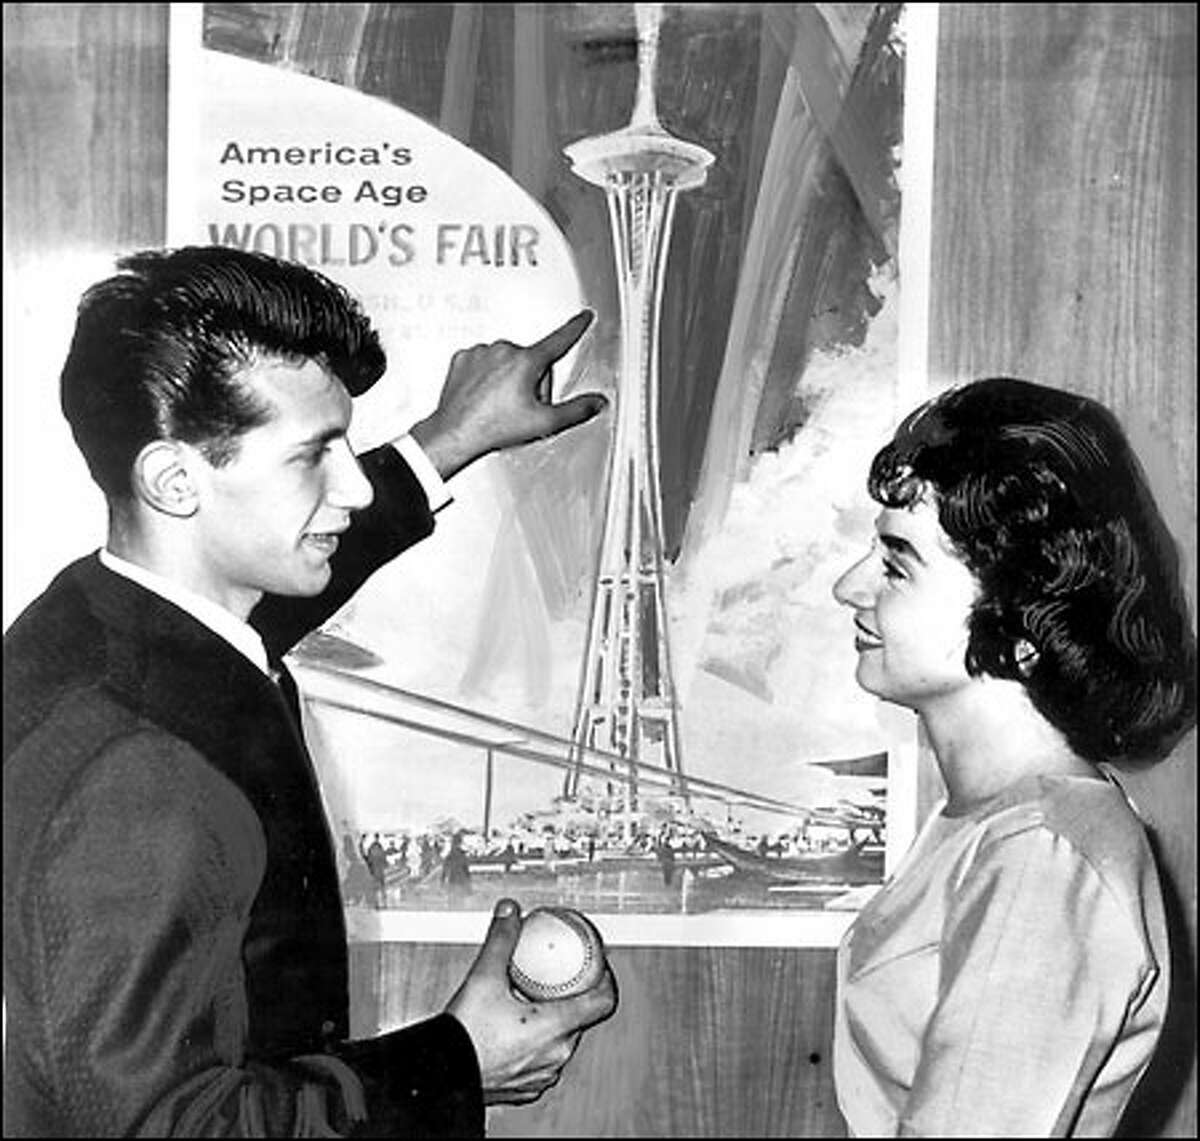 Sal Durante explains to his girlfriend the plan for the 1962 World's Fair: Roger Maris' 61st home run ball was to be dropped from the Space Needle; if Durante caught it, he would earn $1,000.